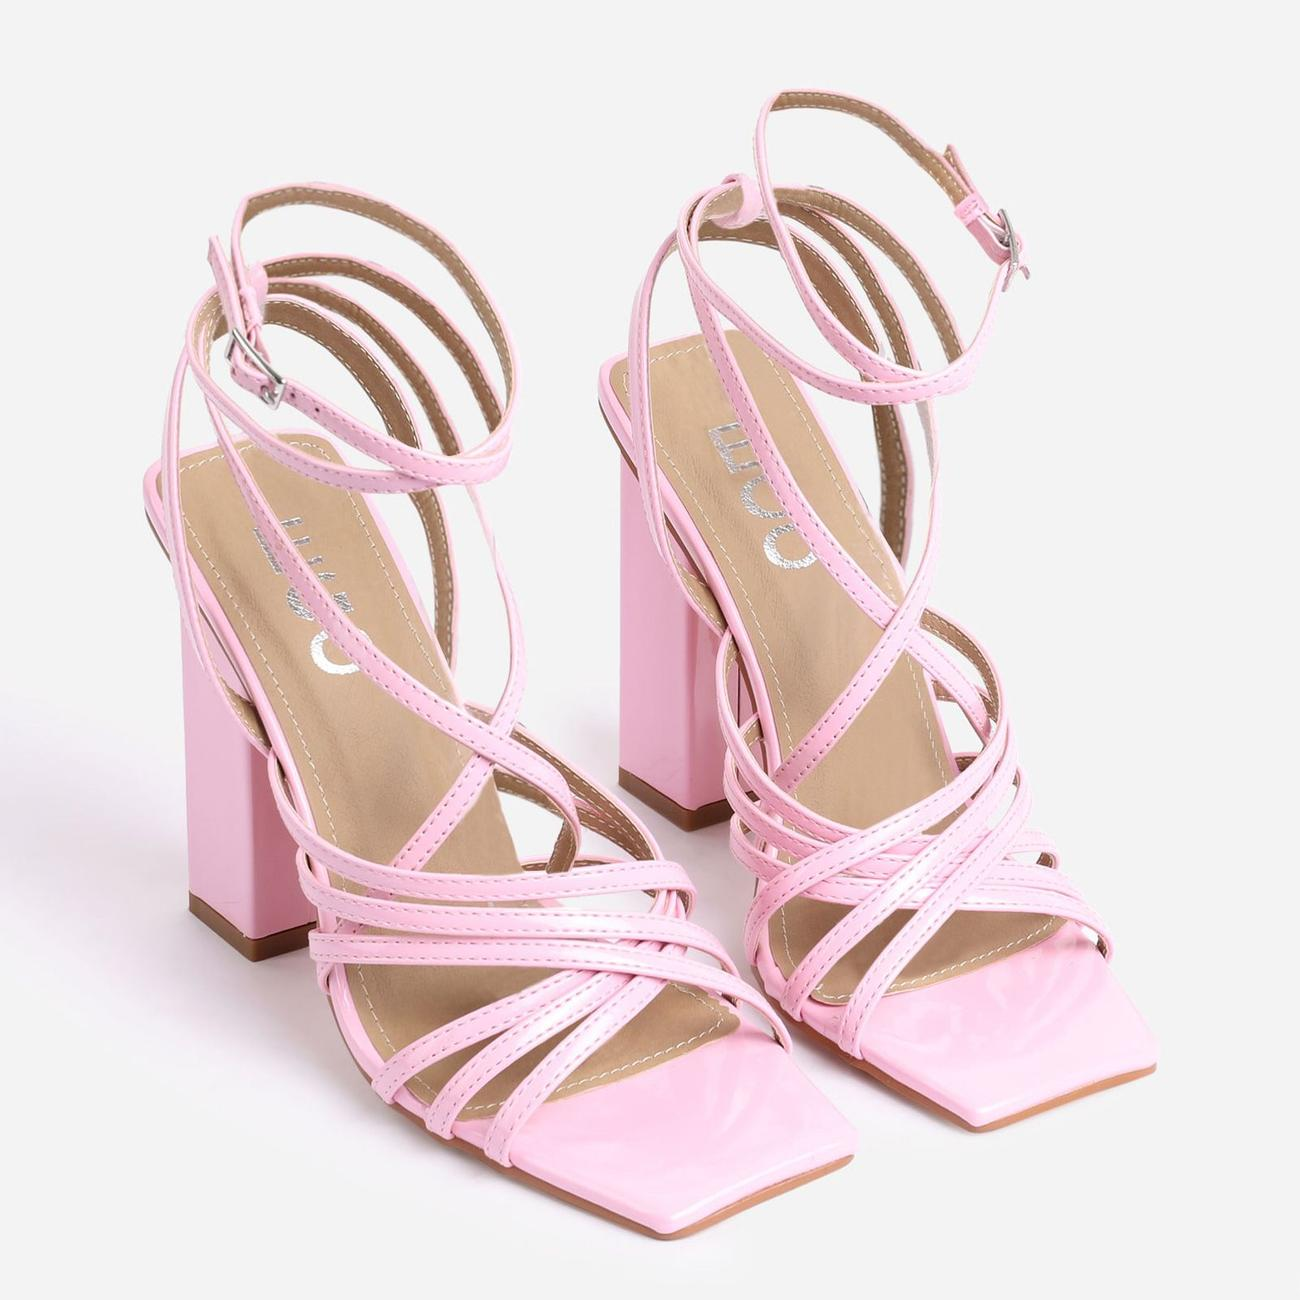 Dancer Square Toe Strappy Block Heel In Pink Patent Image 2